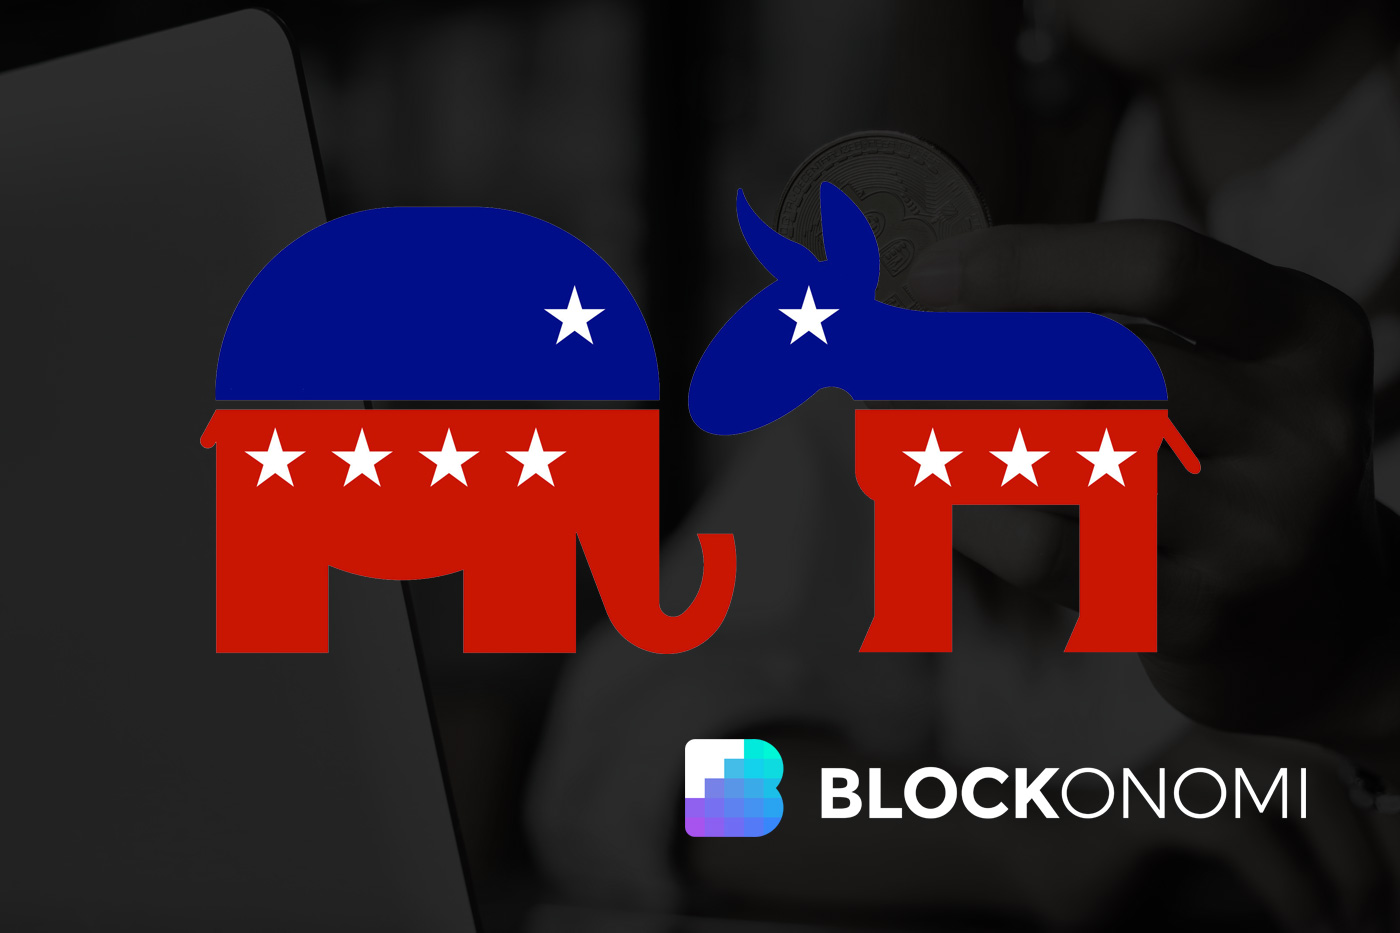 Republicans & Democrats Cryptocurrency